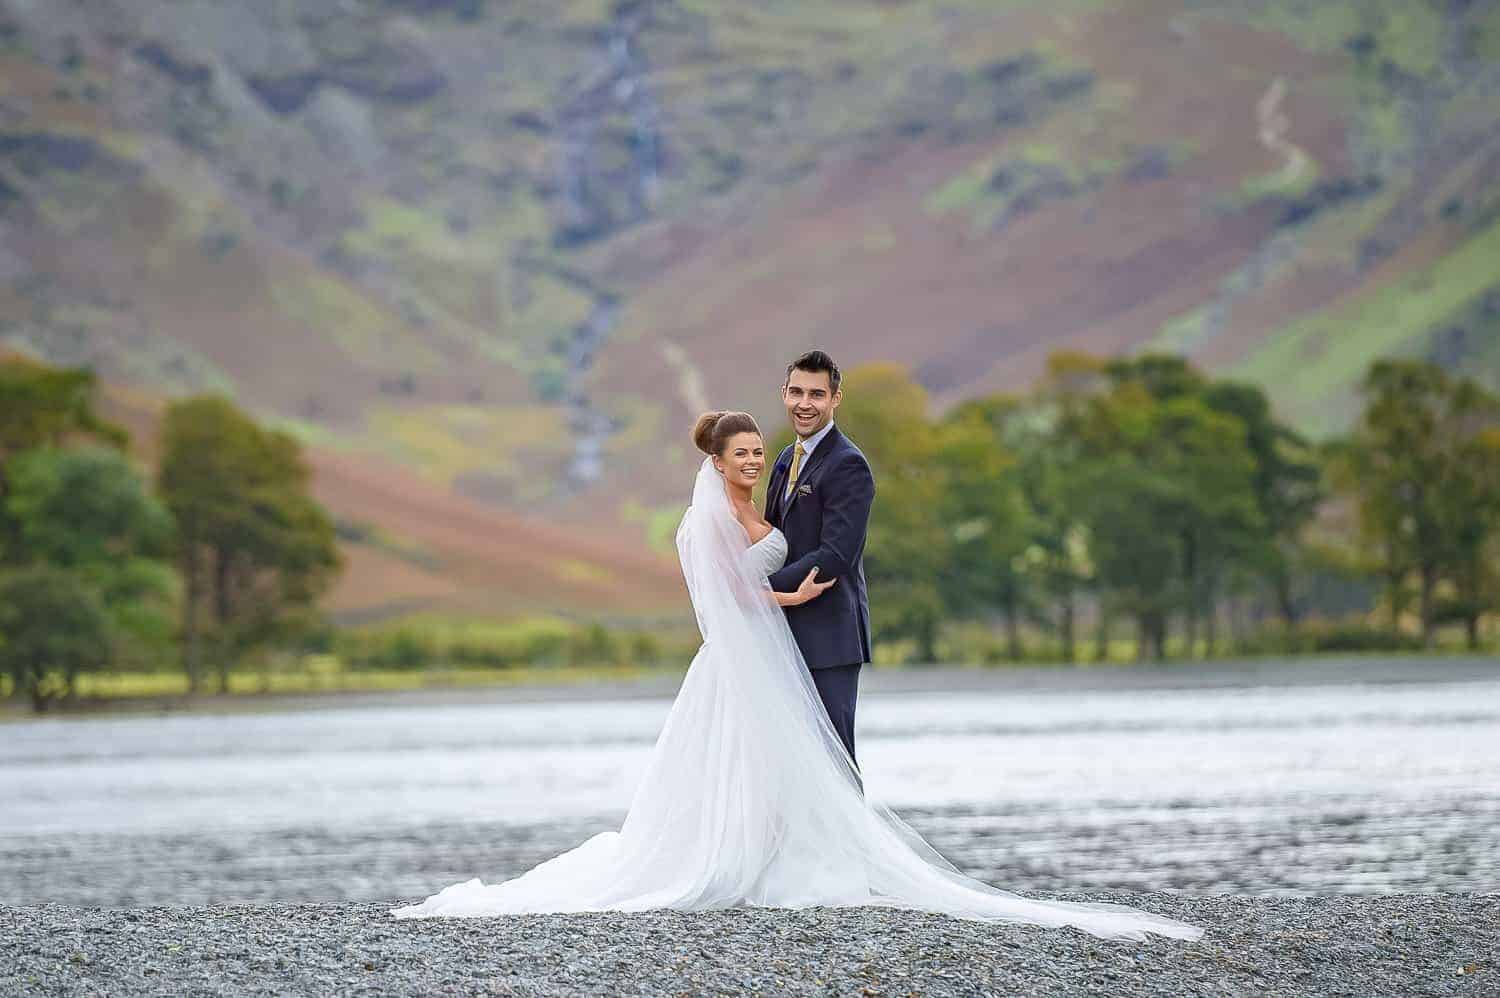 Lake District Wedding Ladore Falls Hotel Borrowdale Keswick Cumbria wedding photographer Glasgow Edinburgh Lake district